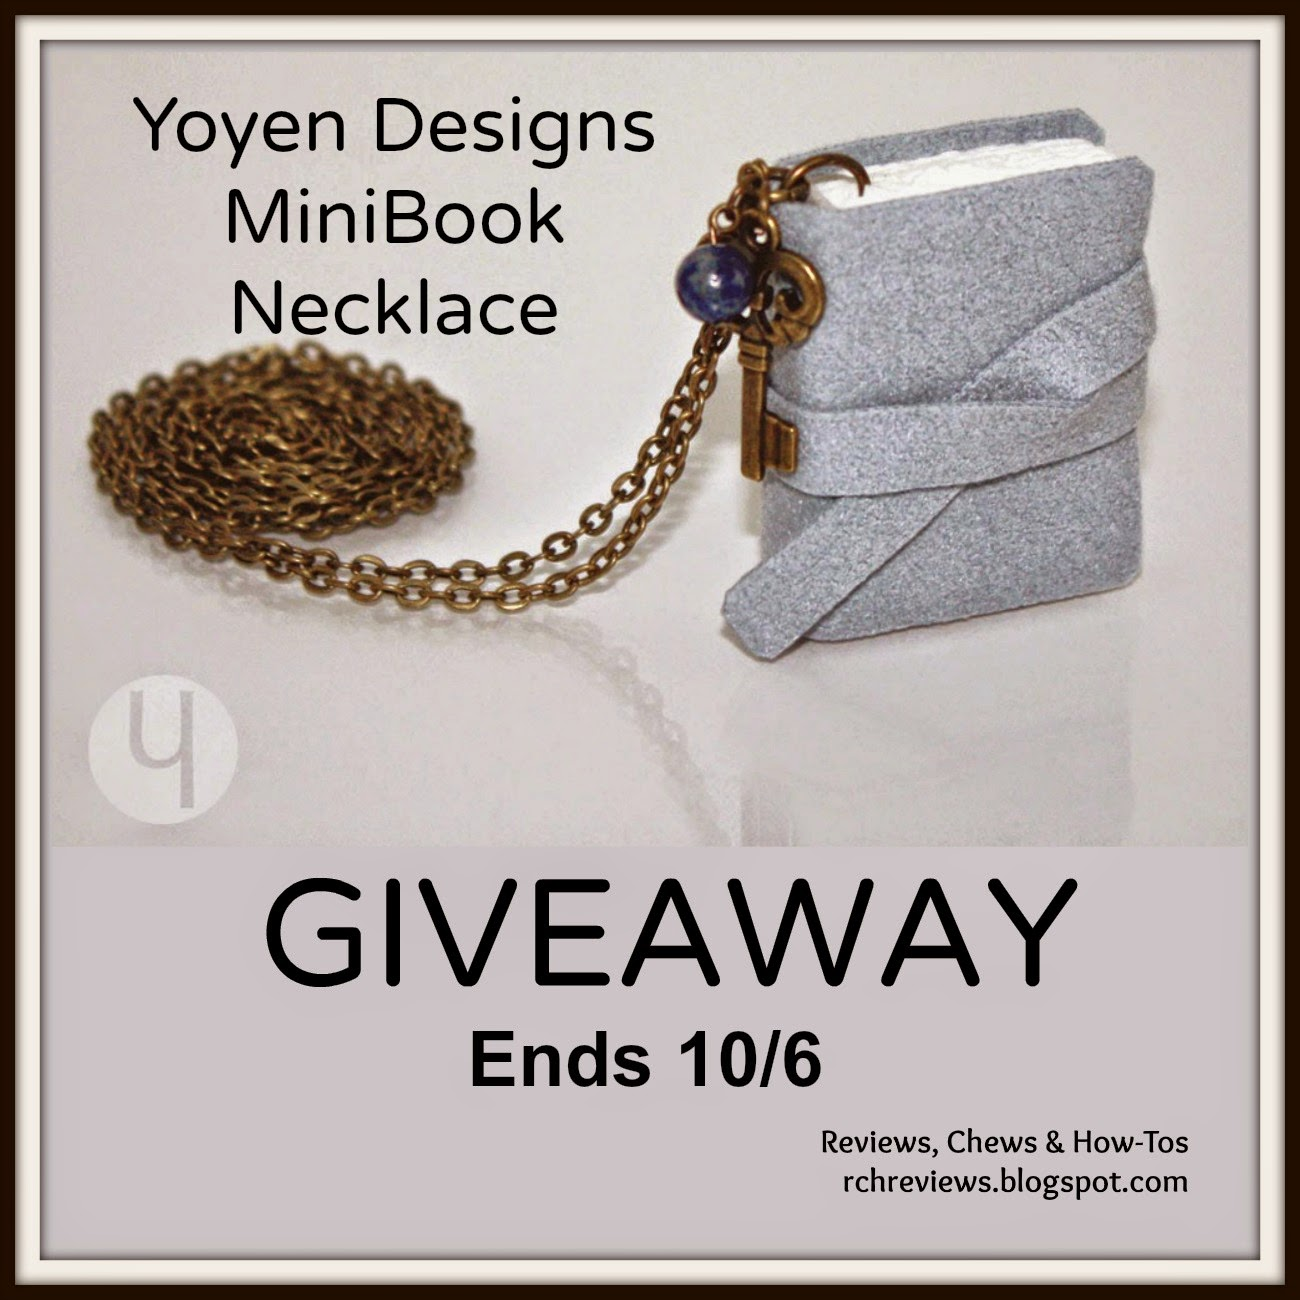 YOYEN DESIGNS MiniBook Necklace